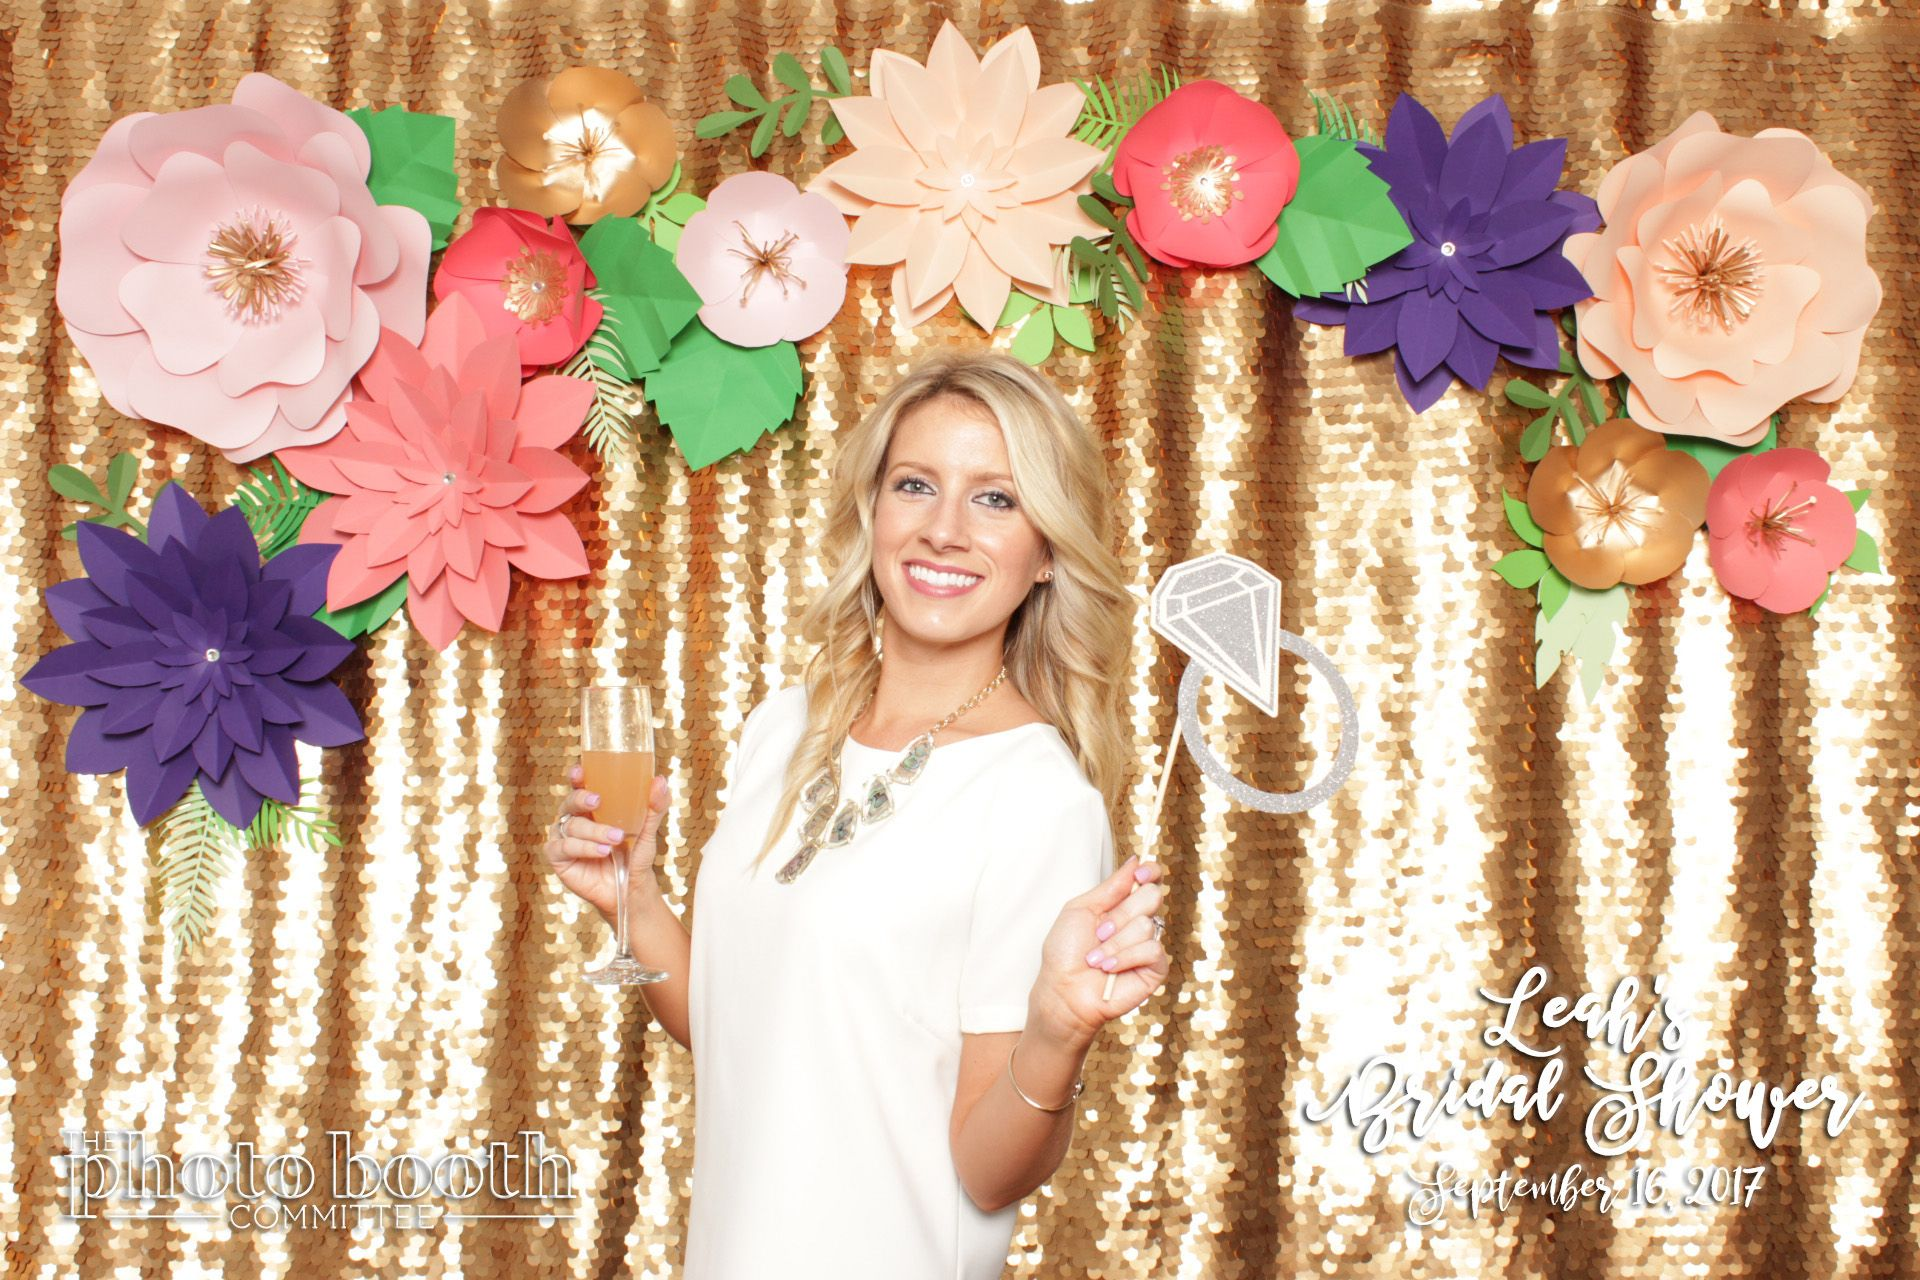 Pin by The Photo Booth Committee on Events! Photo booth